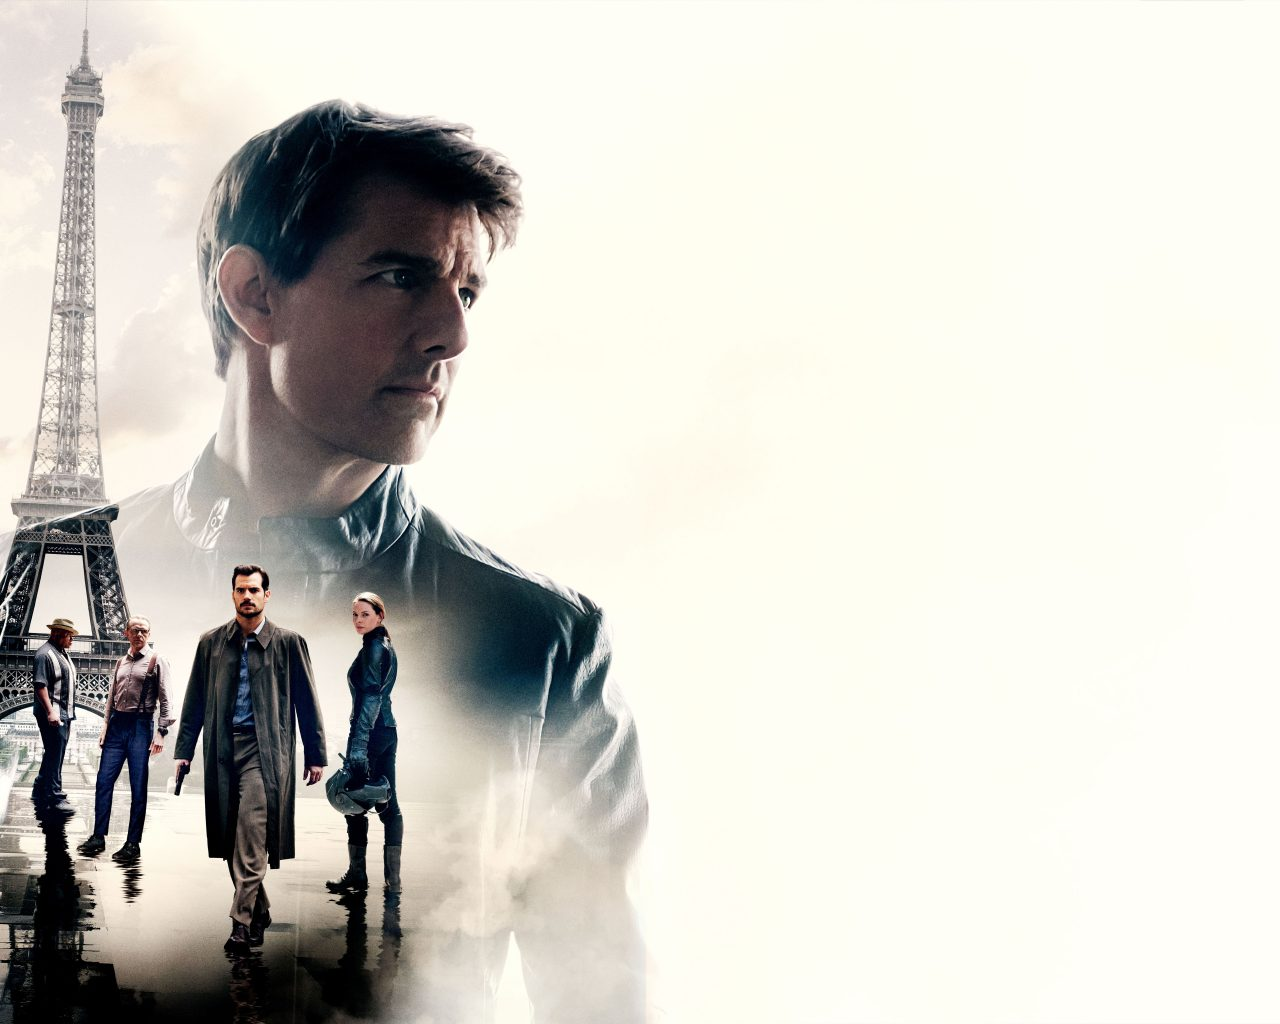 mission impossible – fallout movie cover 8k wallpaper - best wallpapers